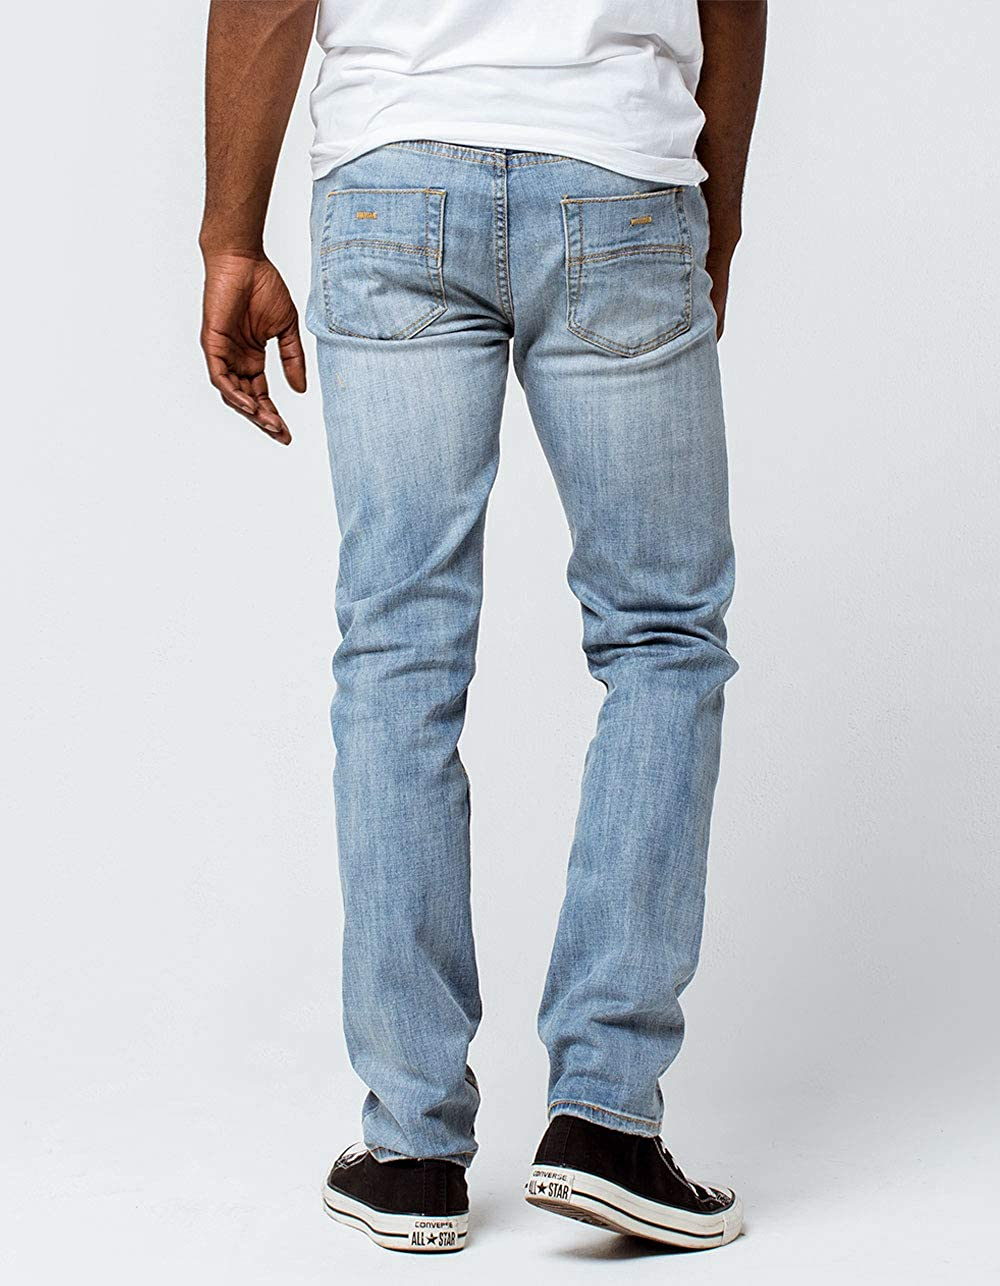 Rsq London Skinny Stretch Jeans